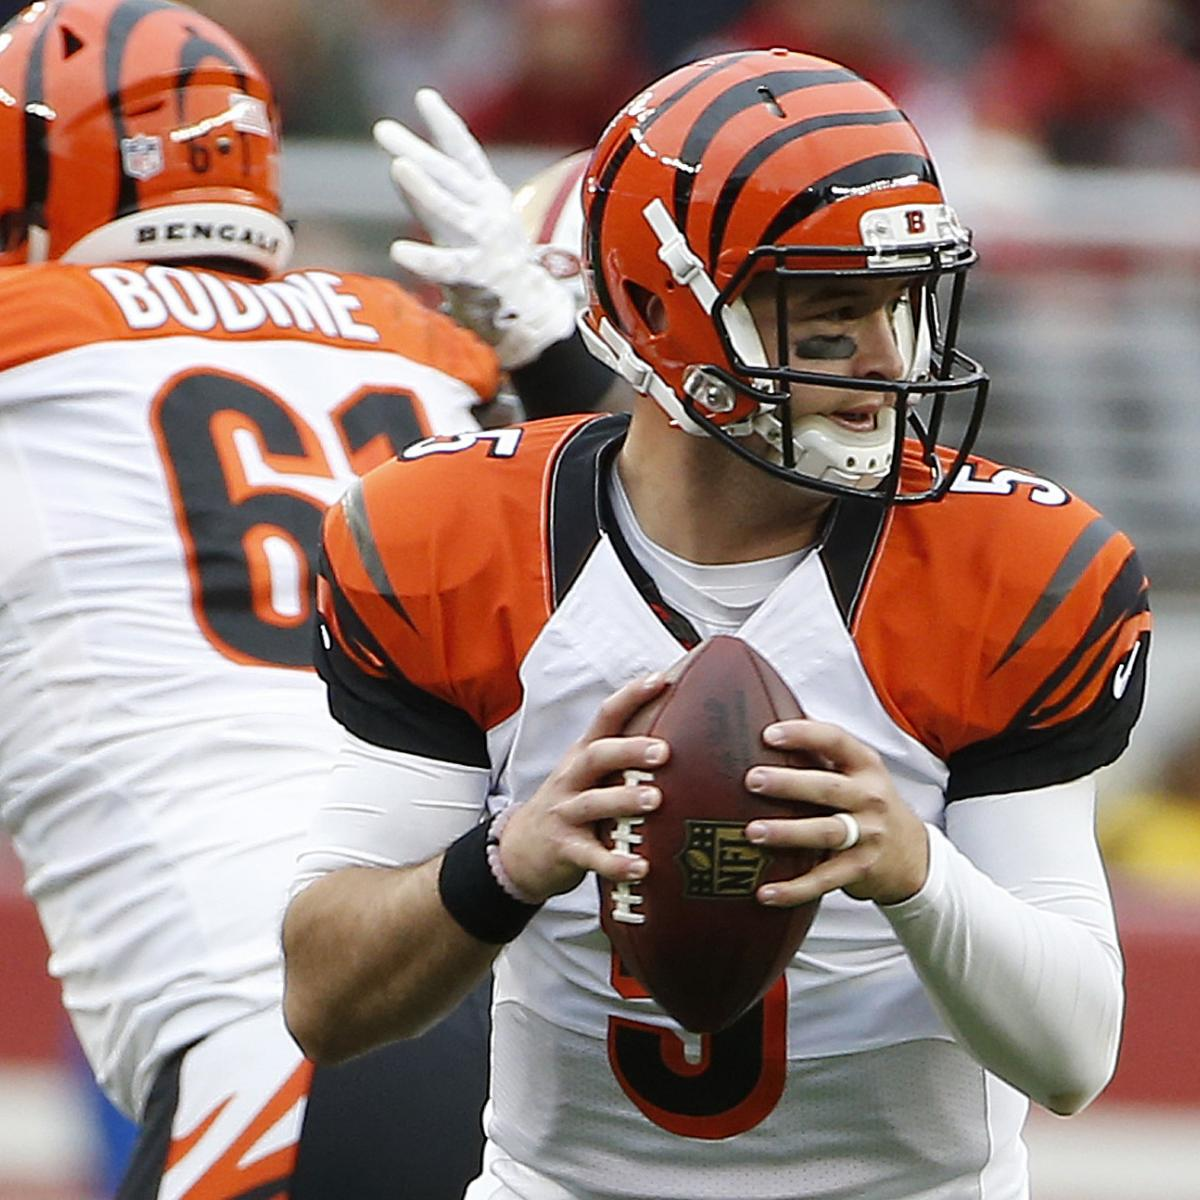 Broncos bengals betting predictions sports betting sites illegal fireworks